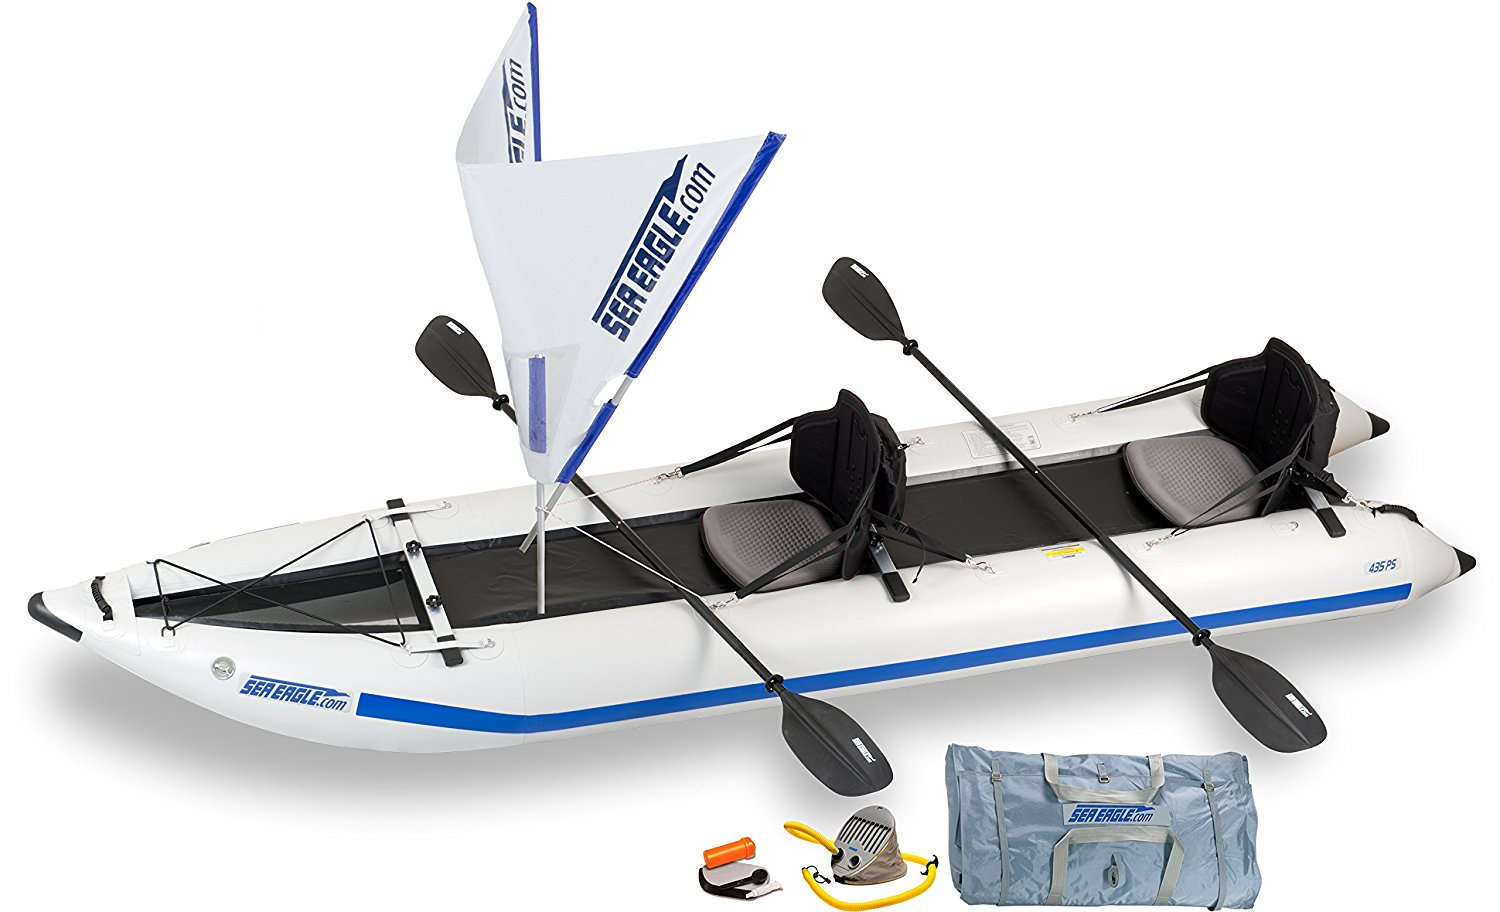 Why Seaeagle Inflatable Kayaks are Better than Conventional